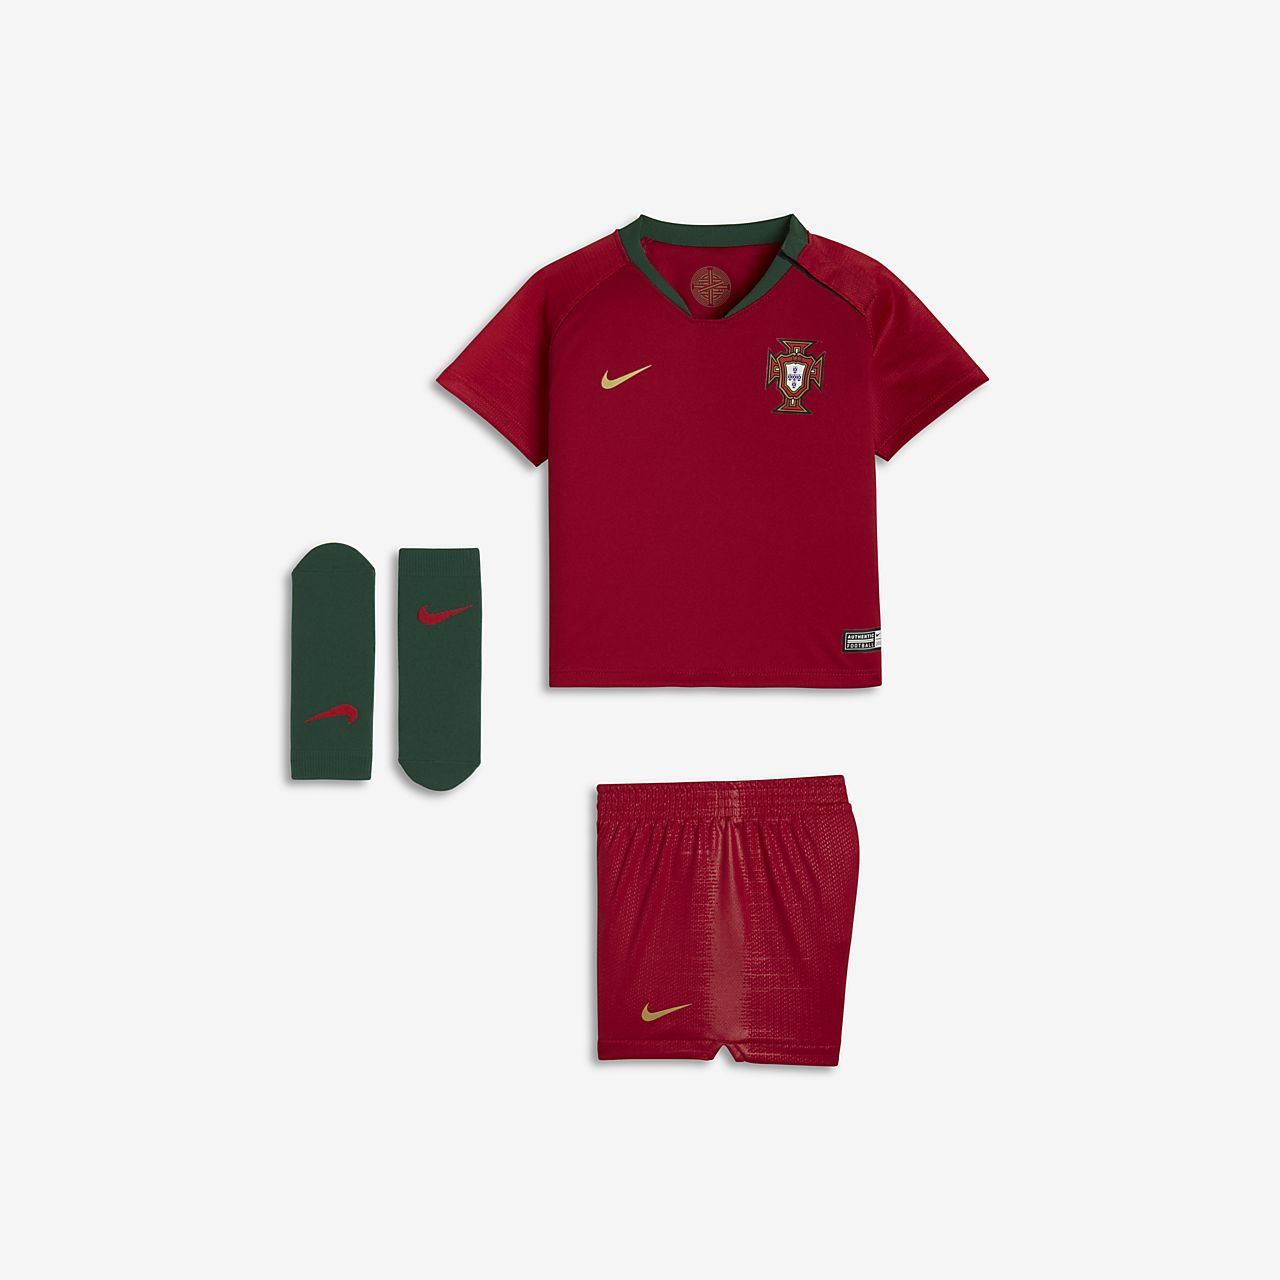 2018 Portugal Stadium Home Women's Football Shirt